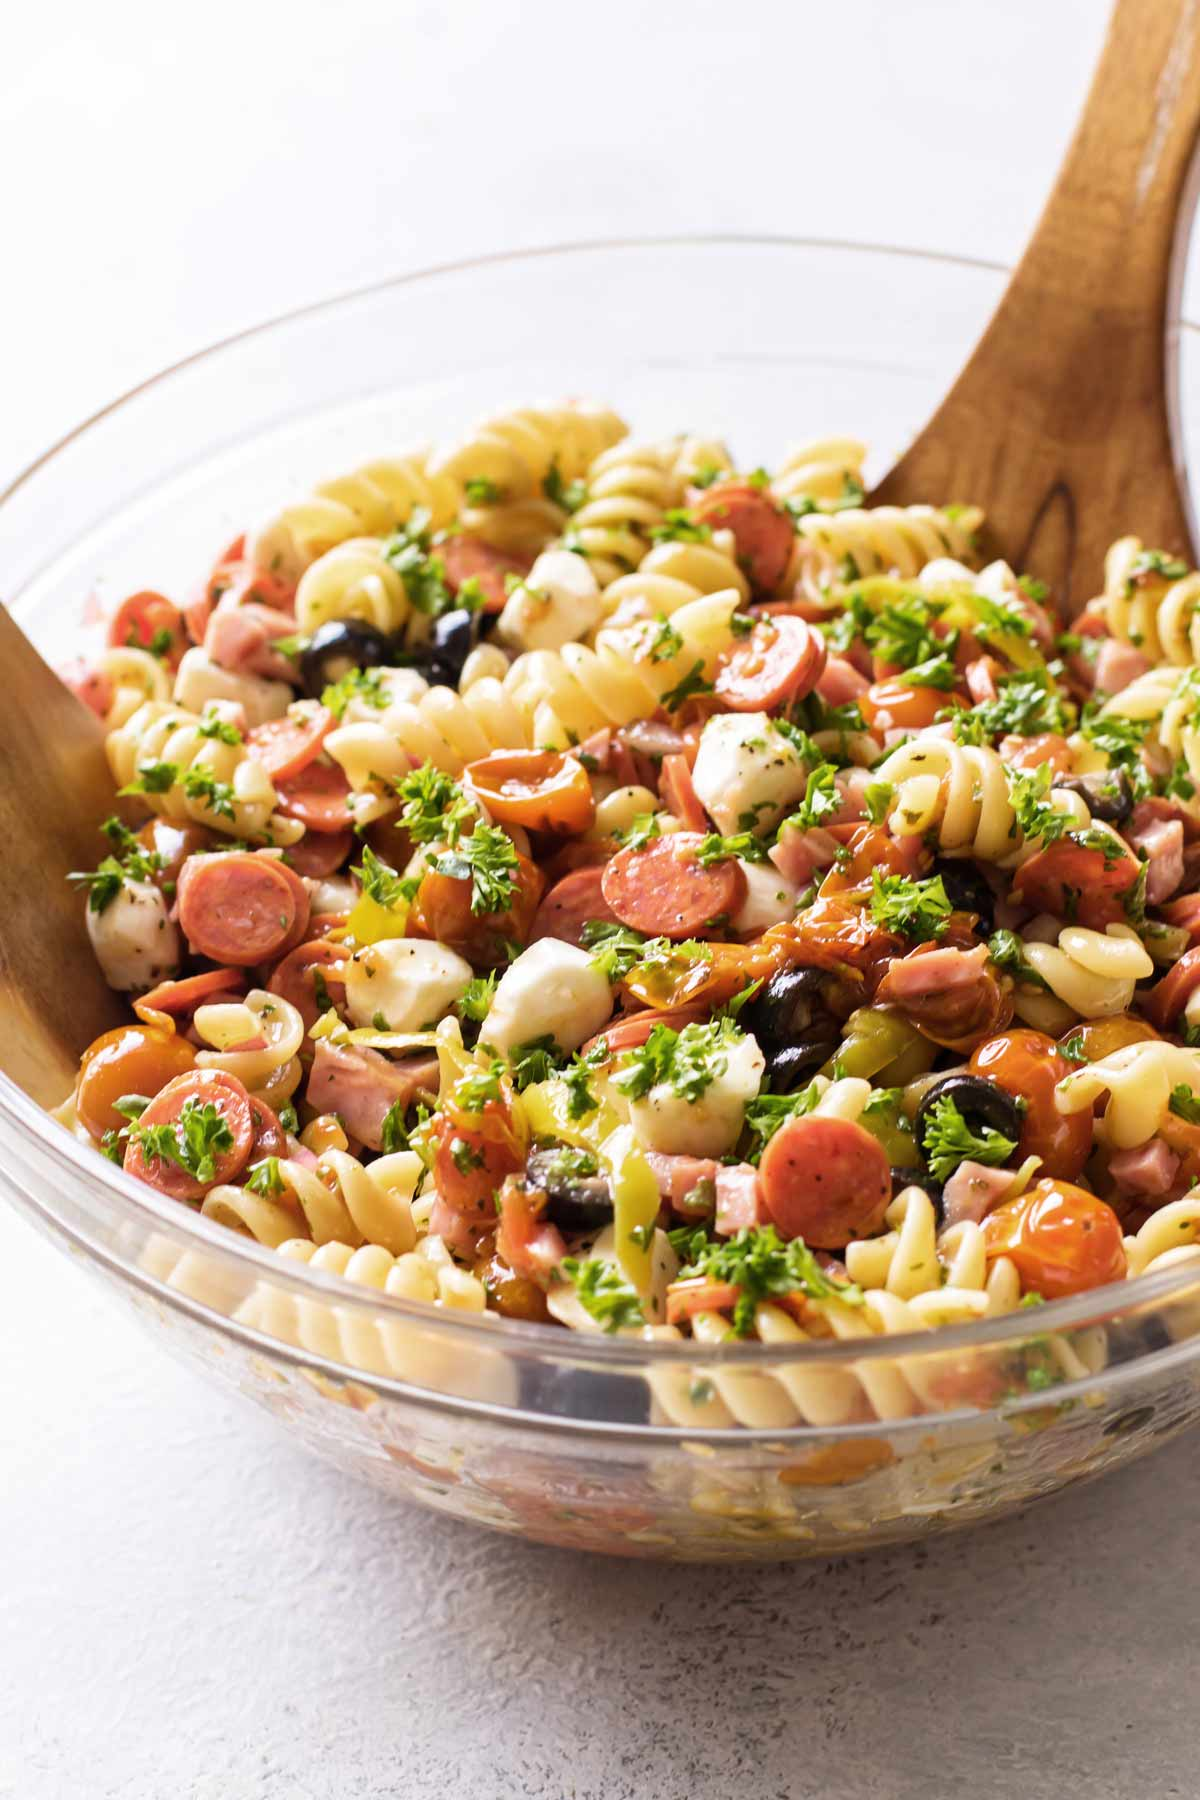 close-up photo of pasta salad in a bowl